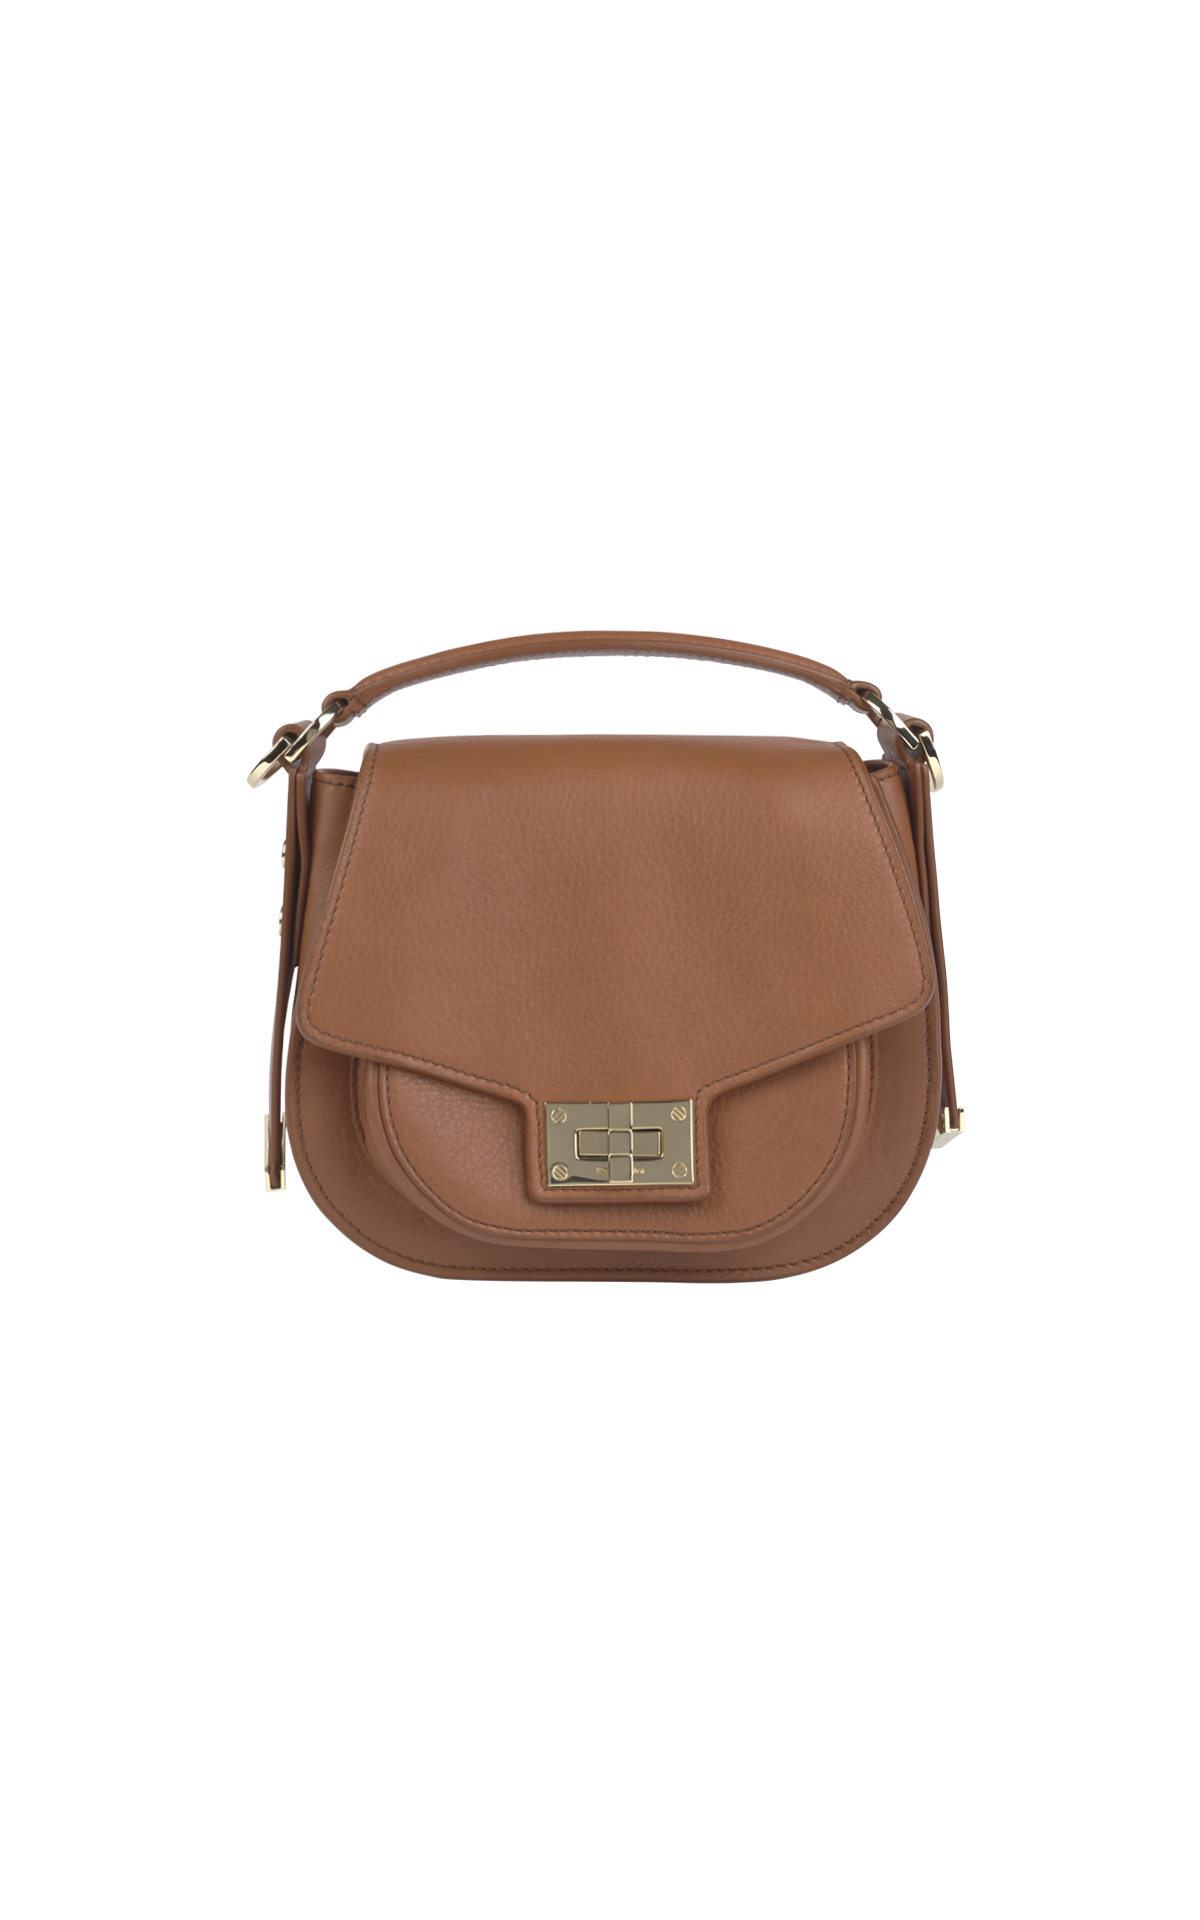 Small camel bag The Kooples